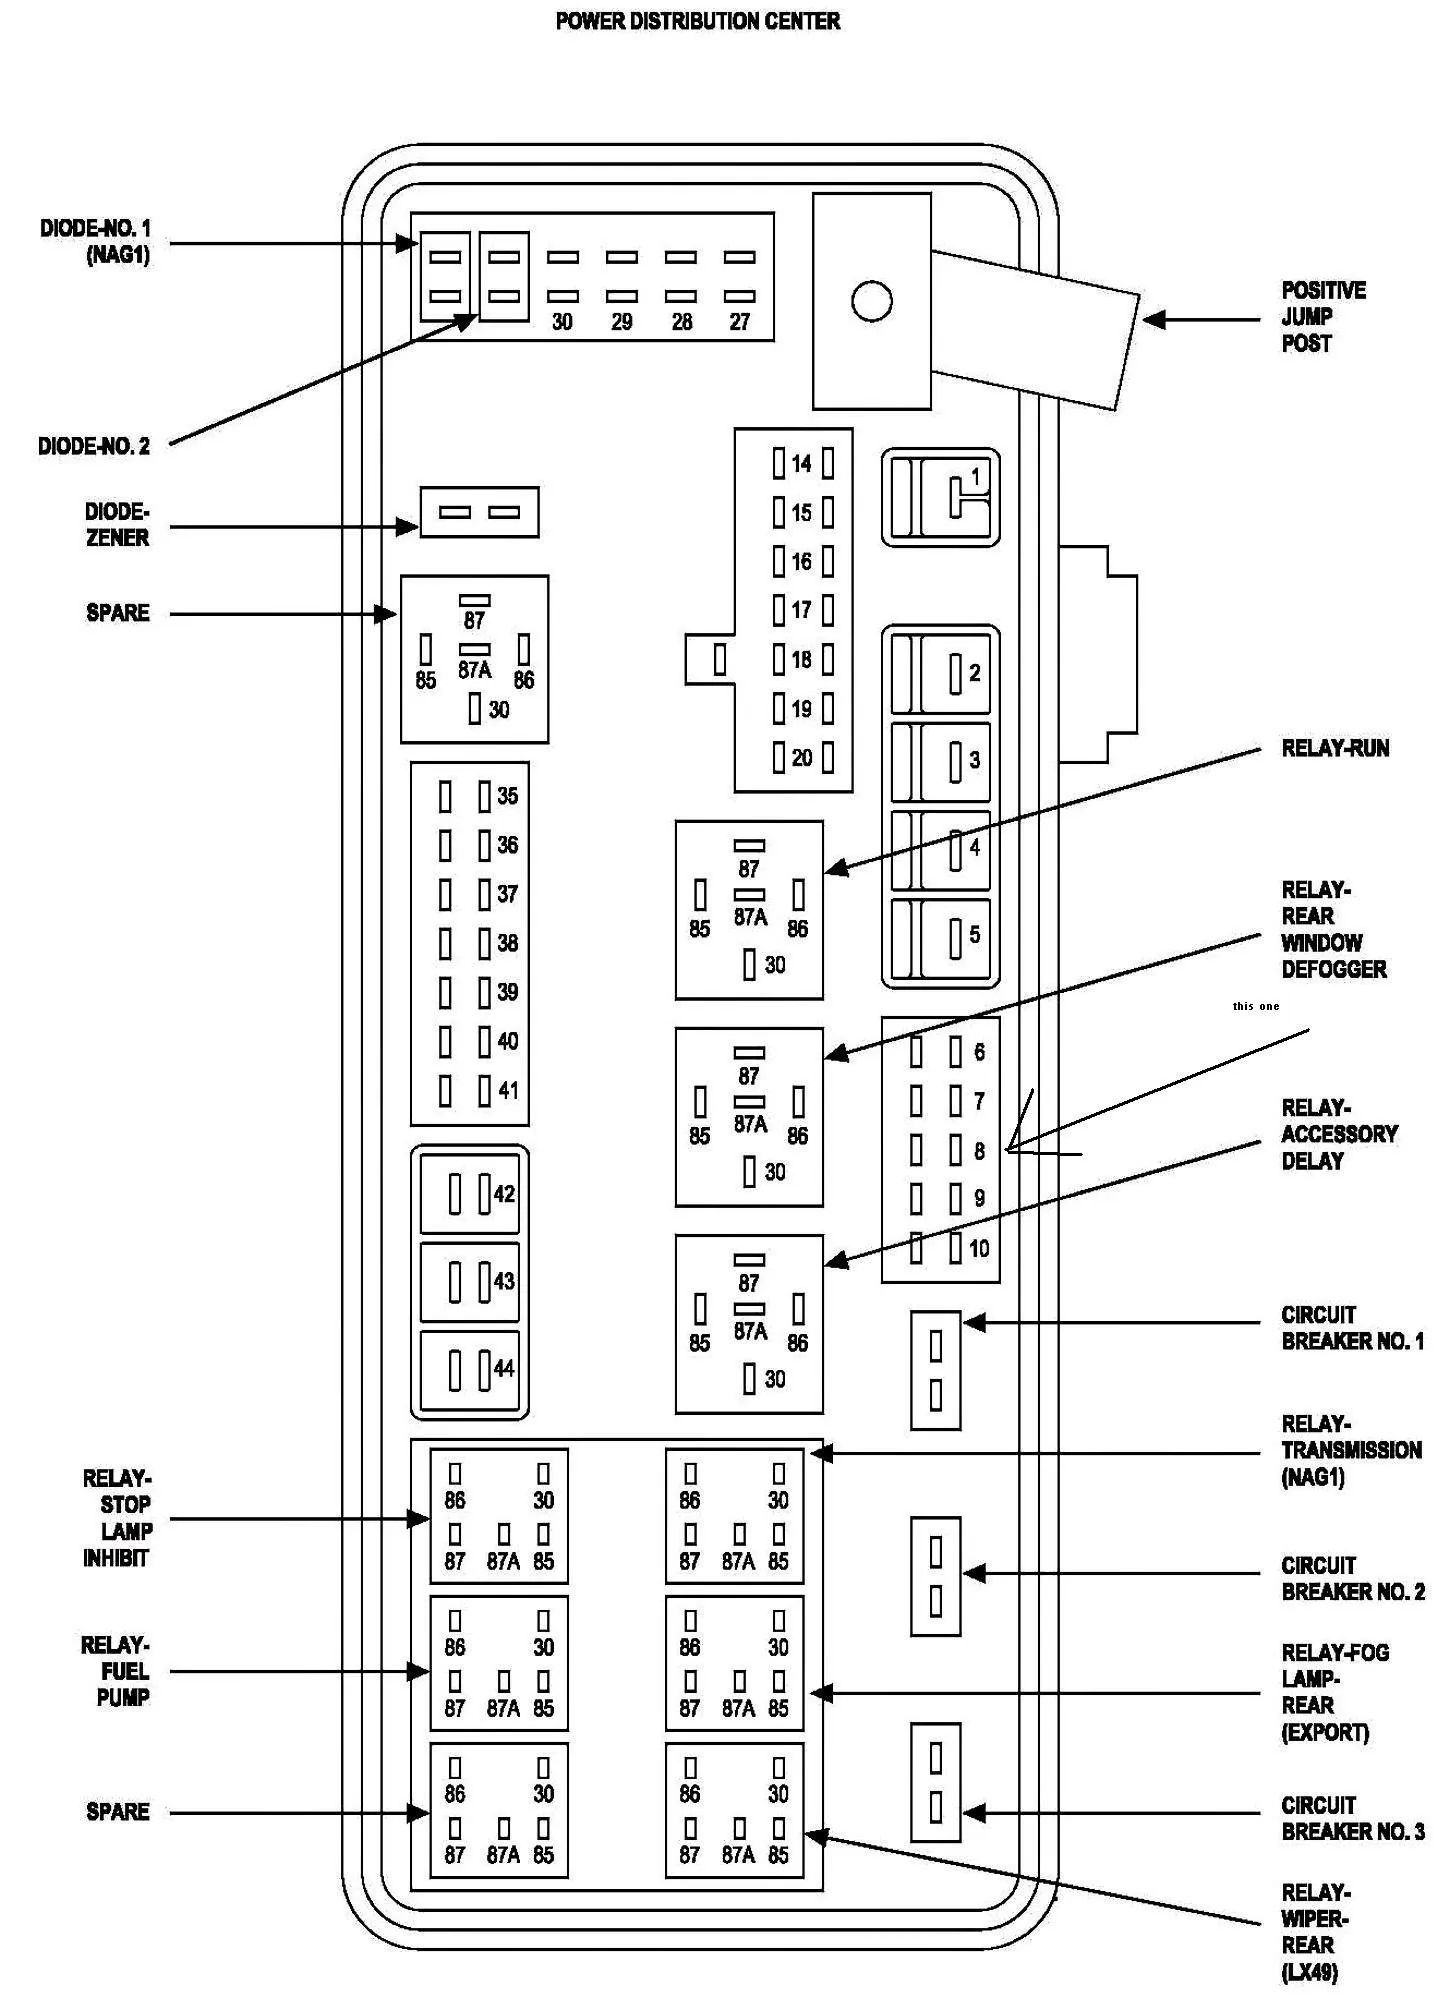 2003 dodge durango fuse box diagram